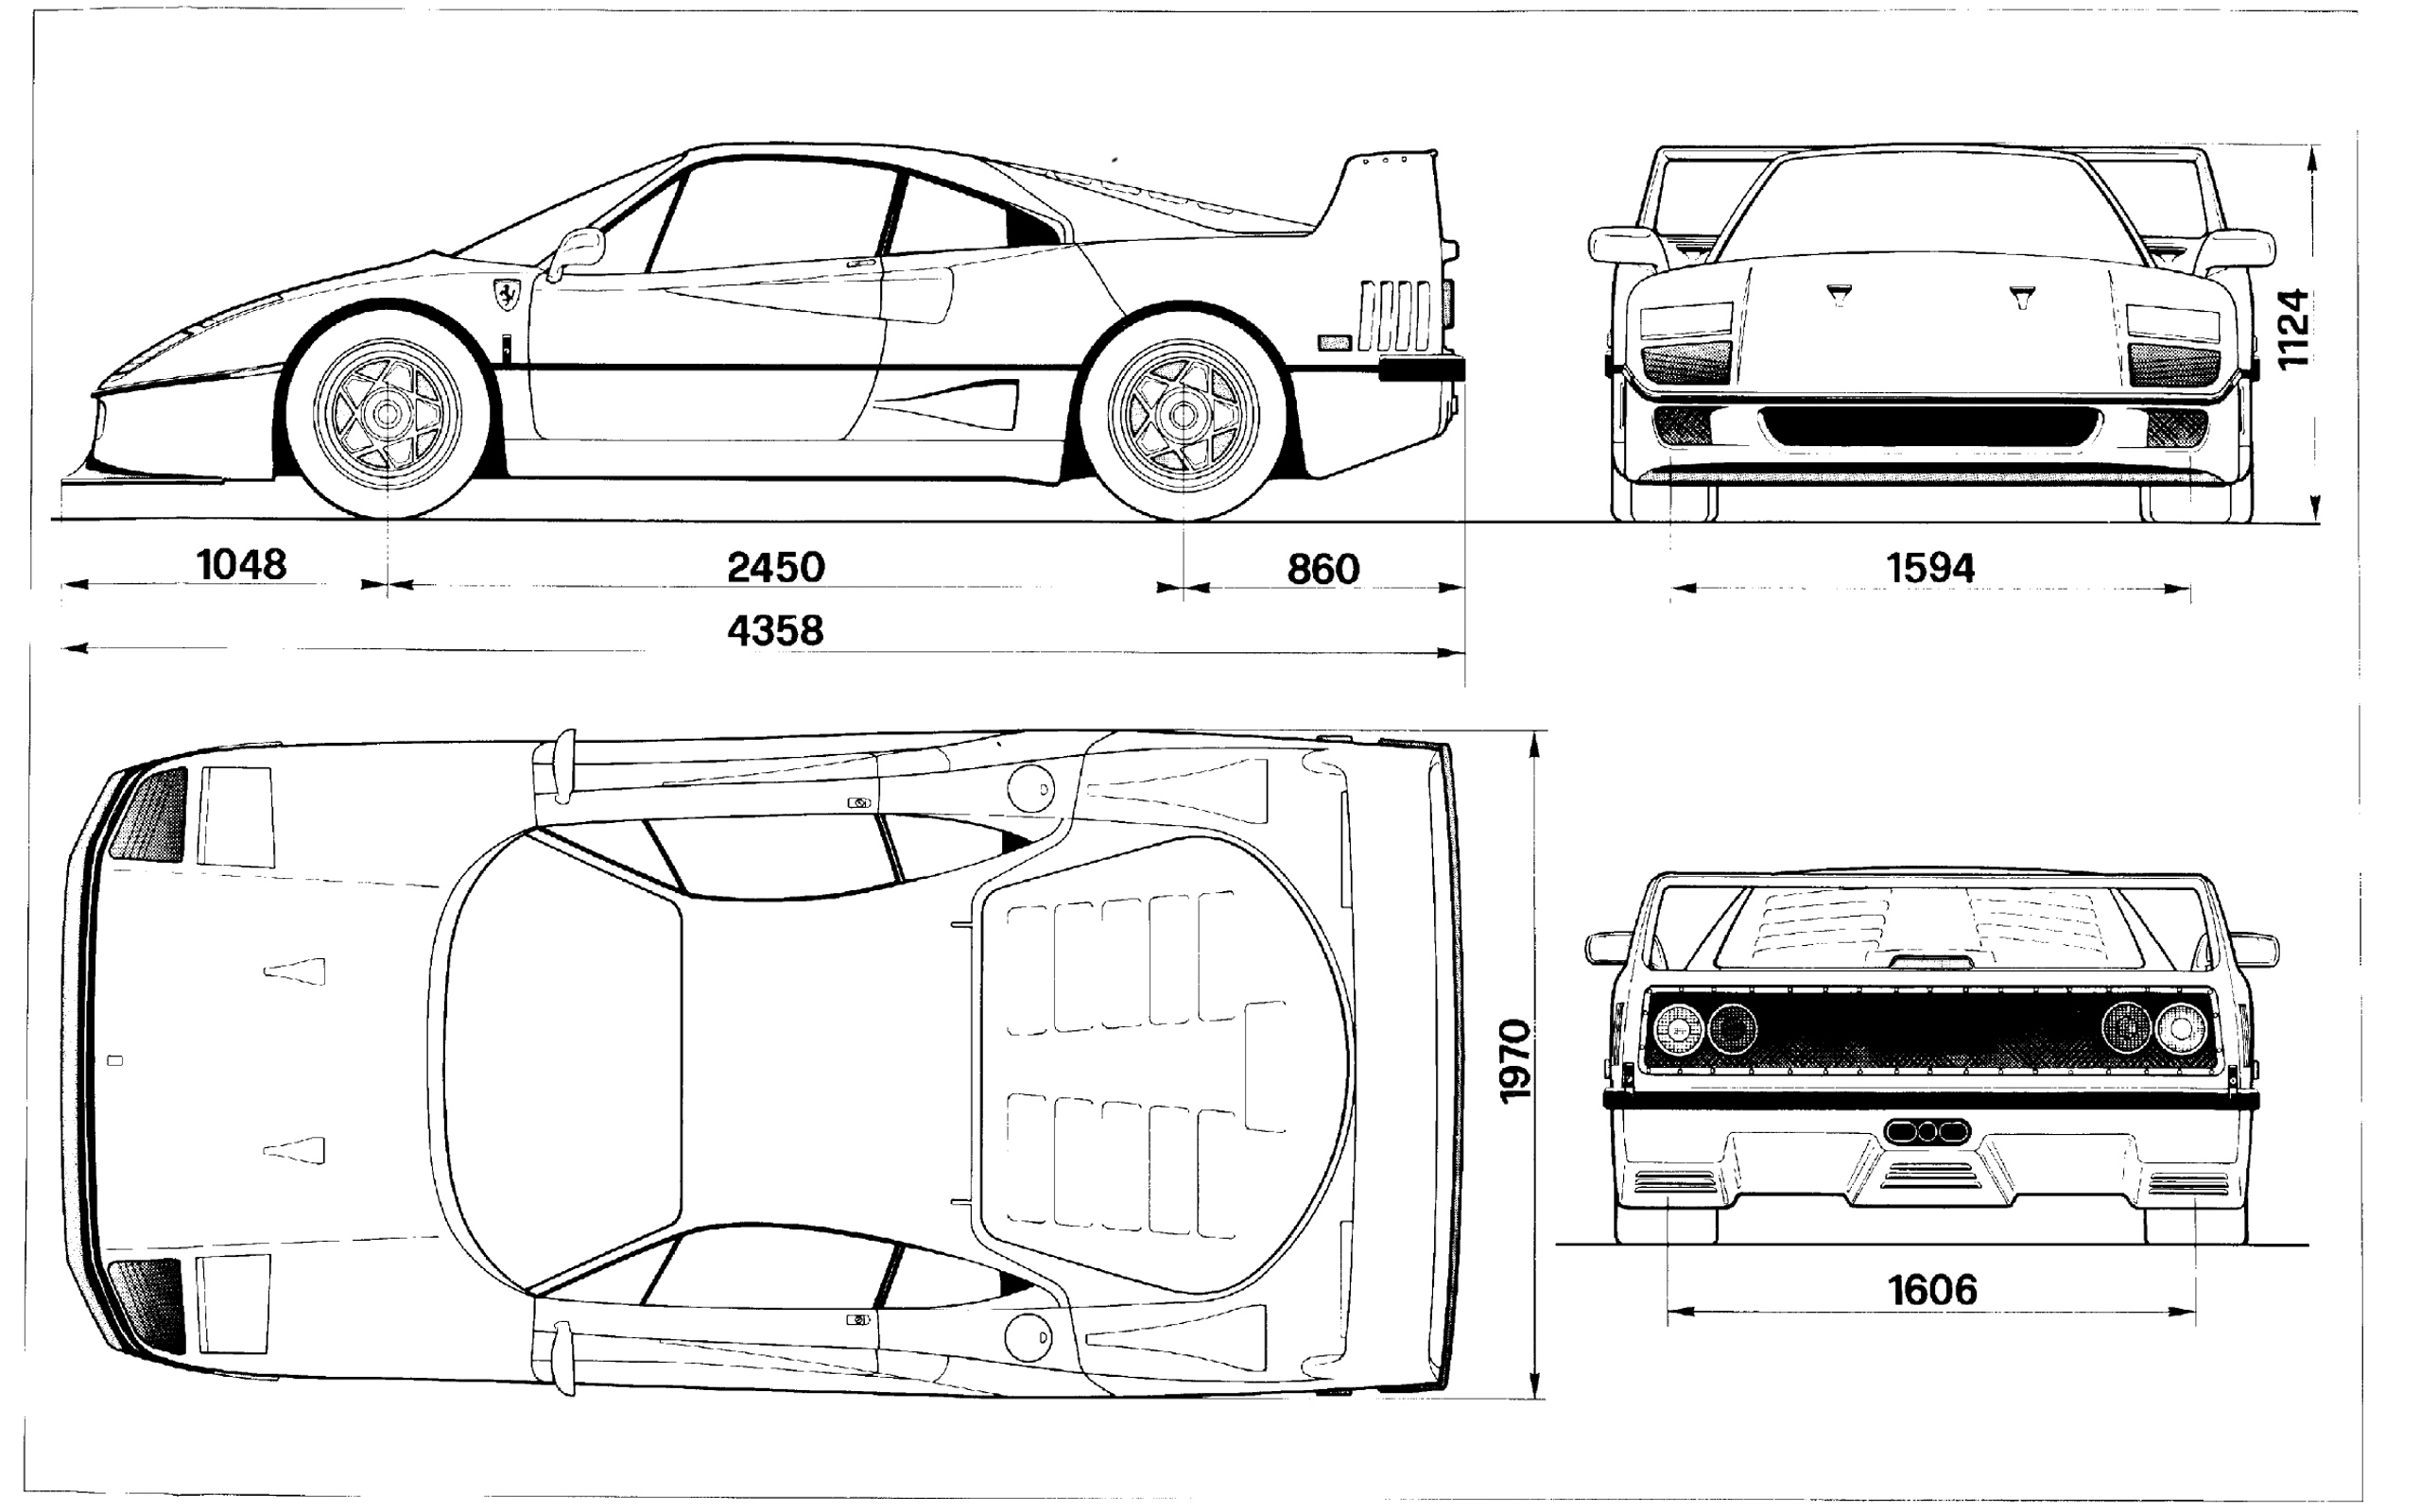 F40 owners manual